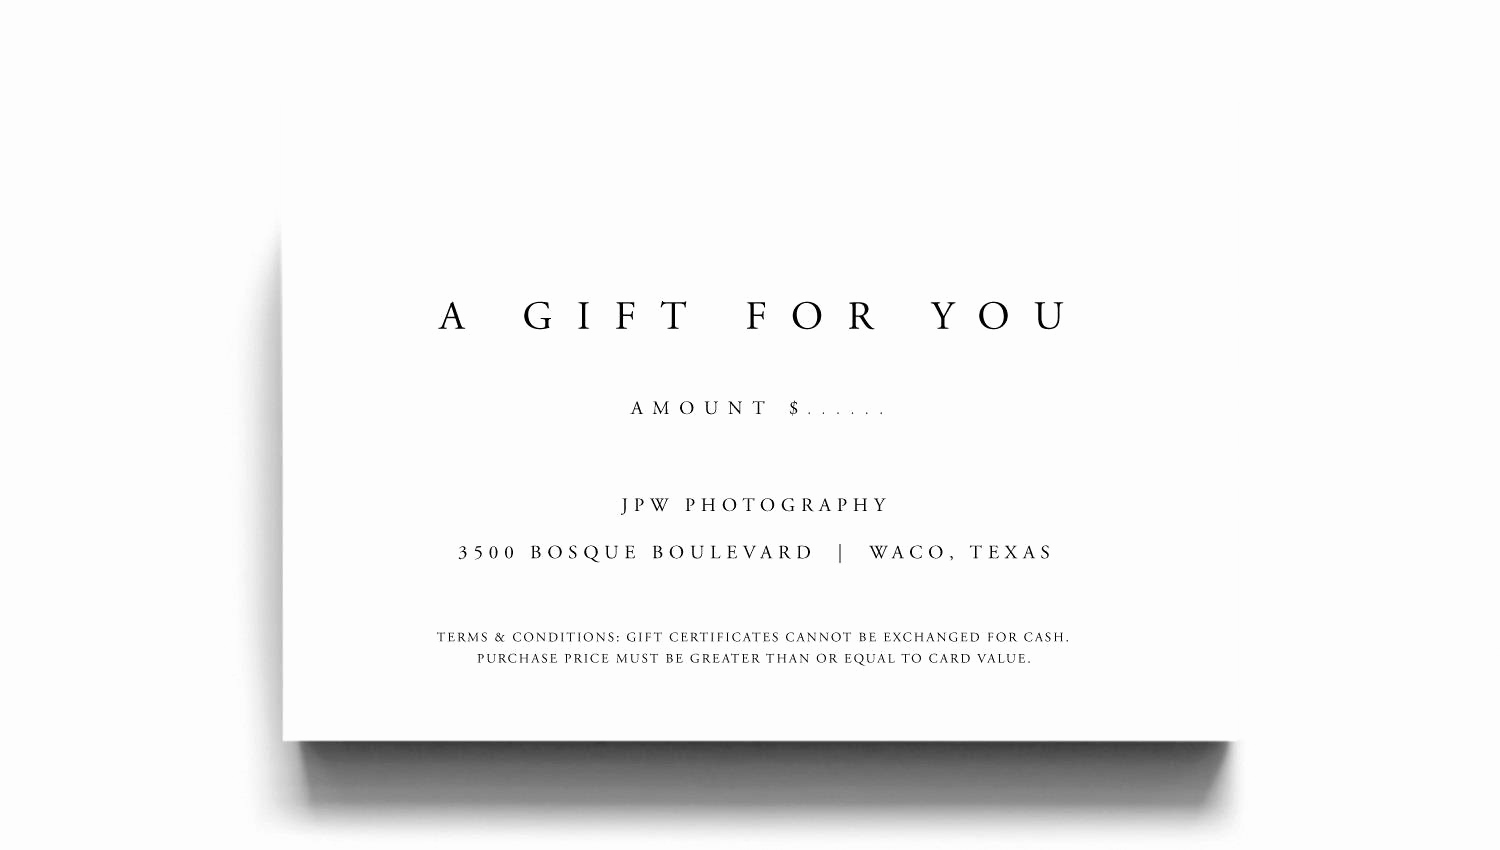 Template for A Gift Certificate Lovely Gift Certificate Template A Gift for You Gift Voucher